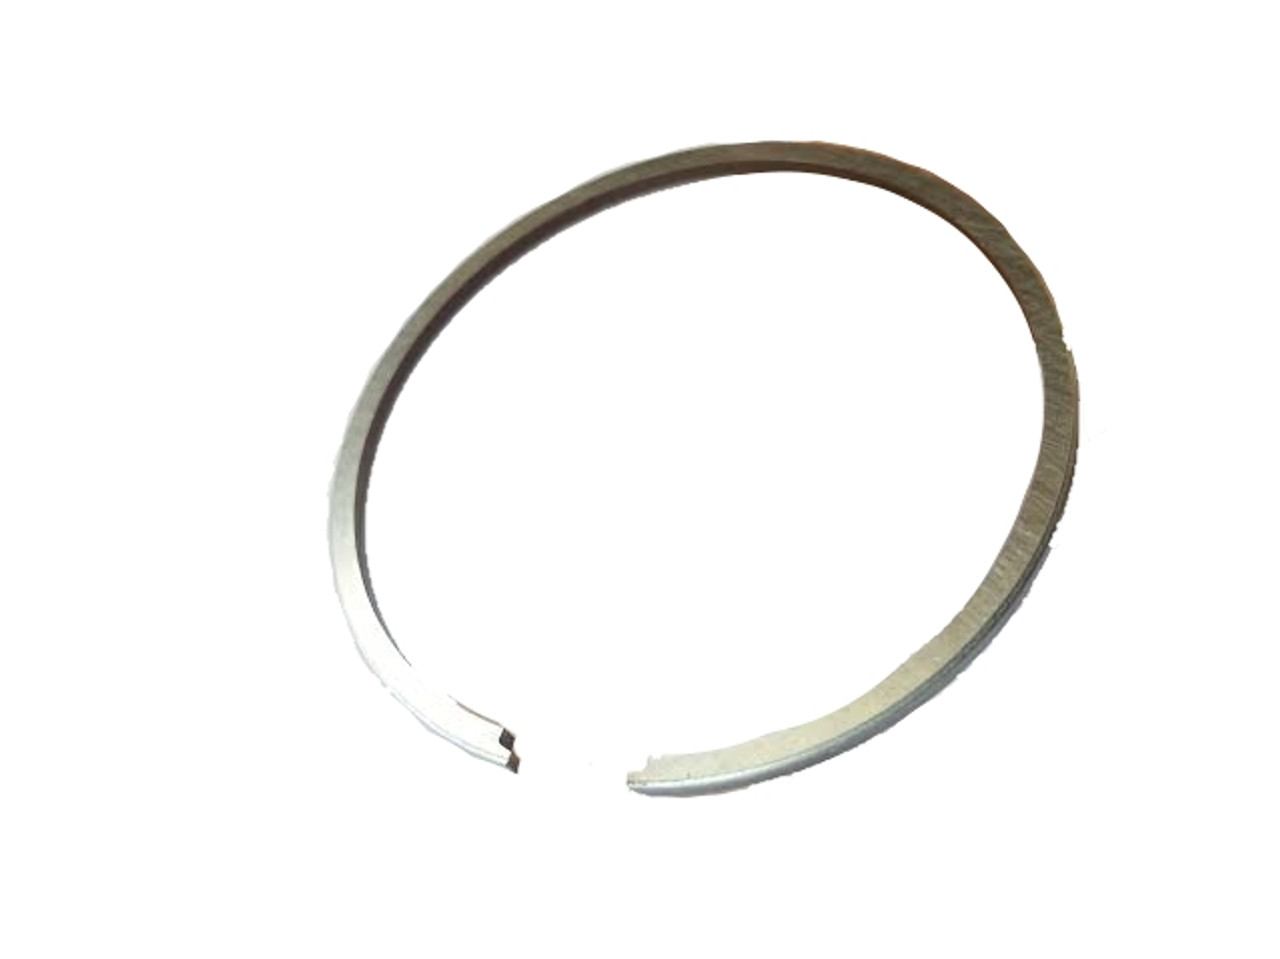 Puch Chromed Piston Ring - 38mm x 1.5mm GI